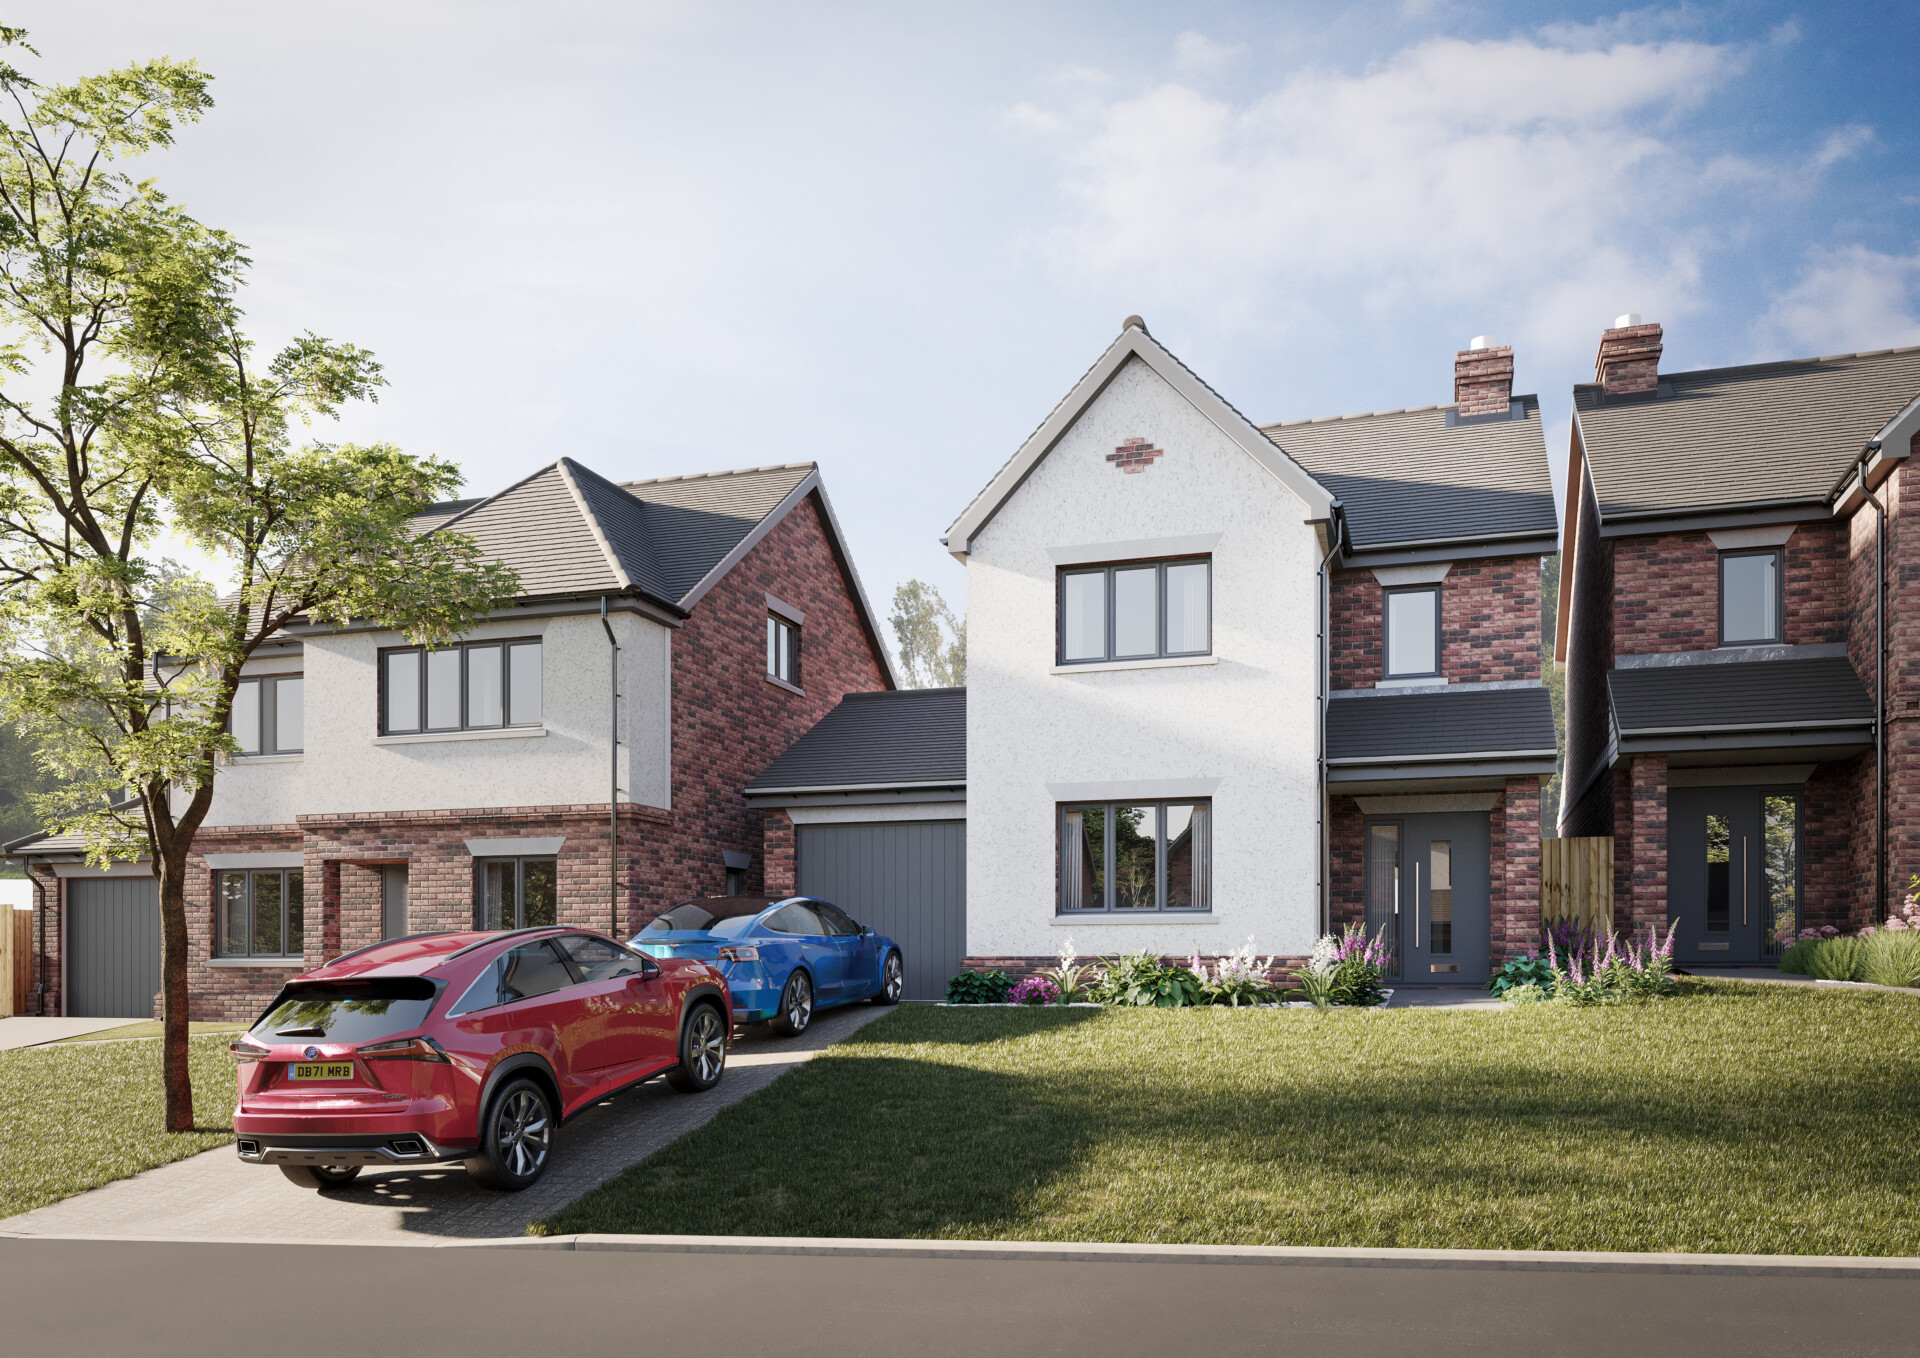 Plot 8 Townsend Meadows Station Road Ashwell SG7 5LS – Four bedroom detached family home